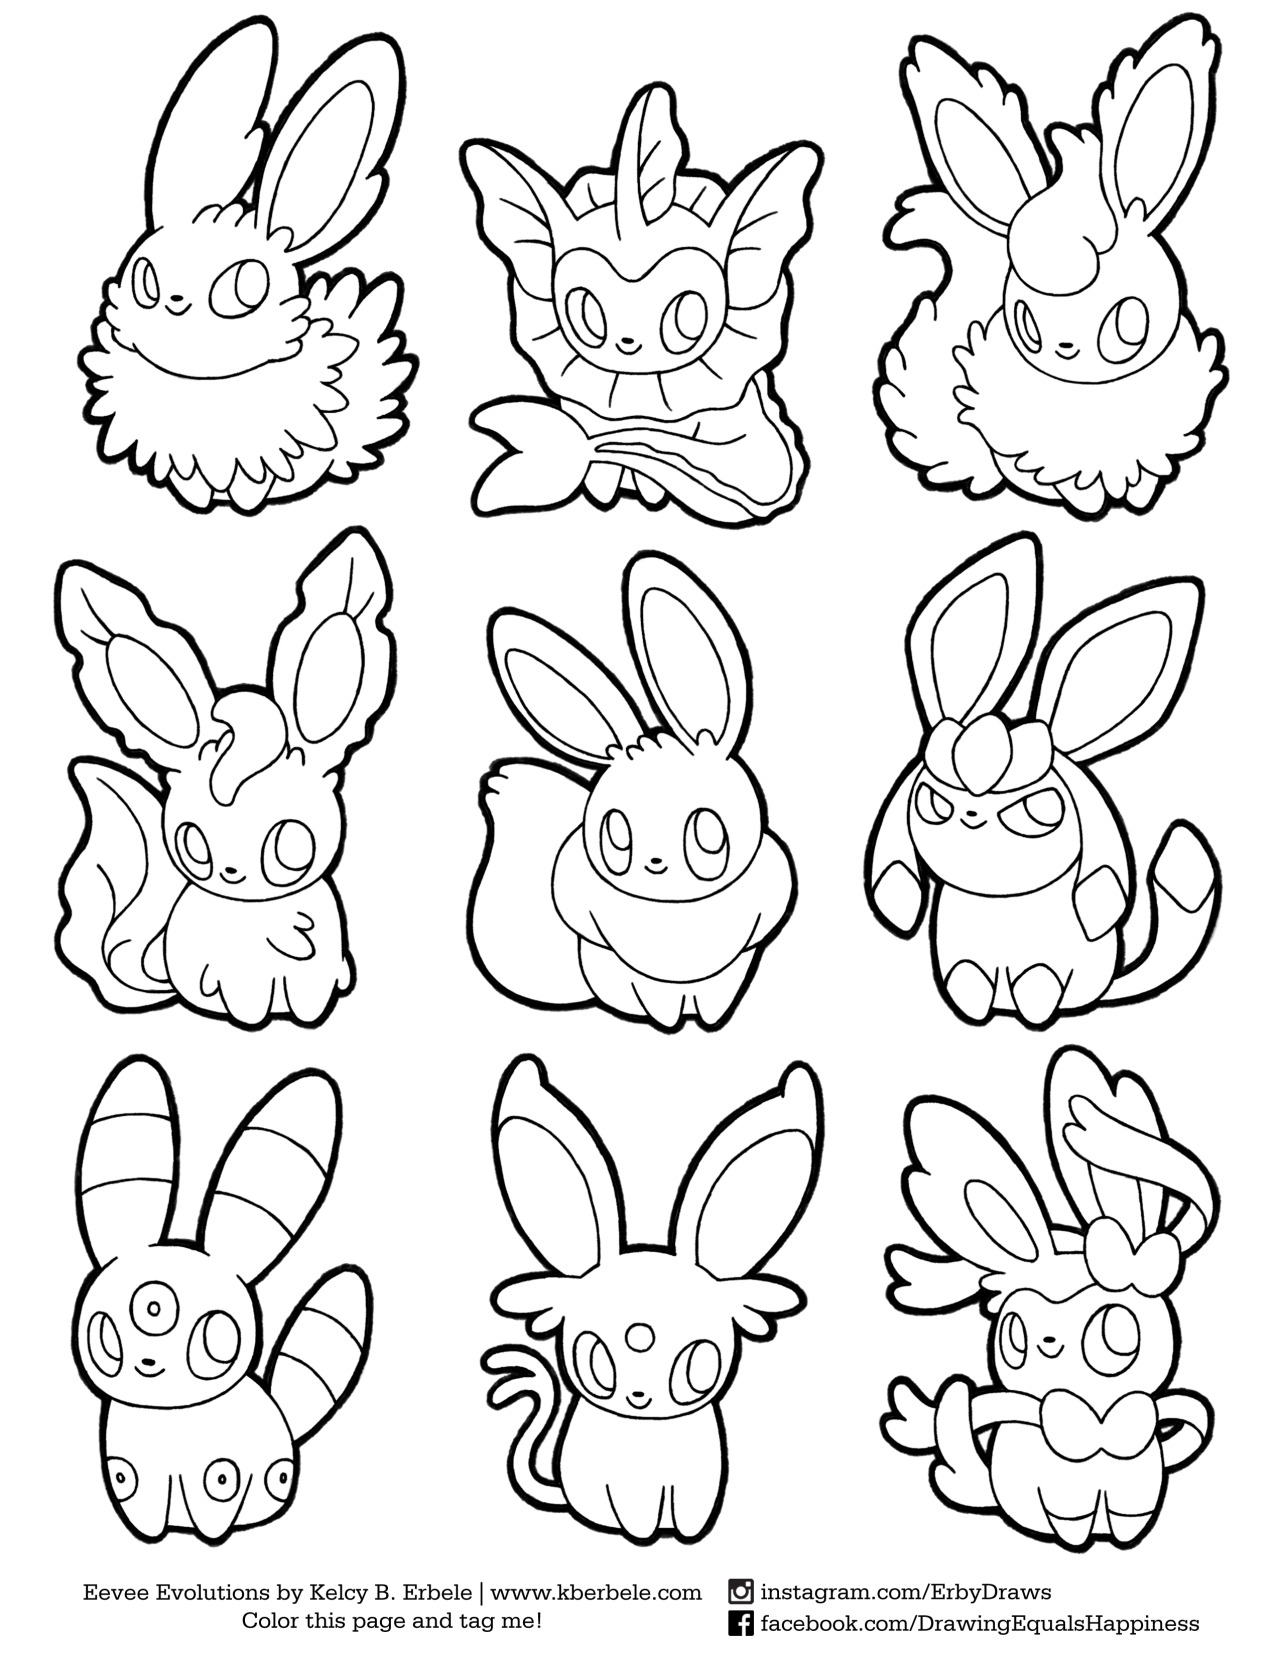 Sylveon Coloring Pages - Eeveelution Coloring Page the File is On My Drawing